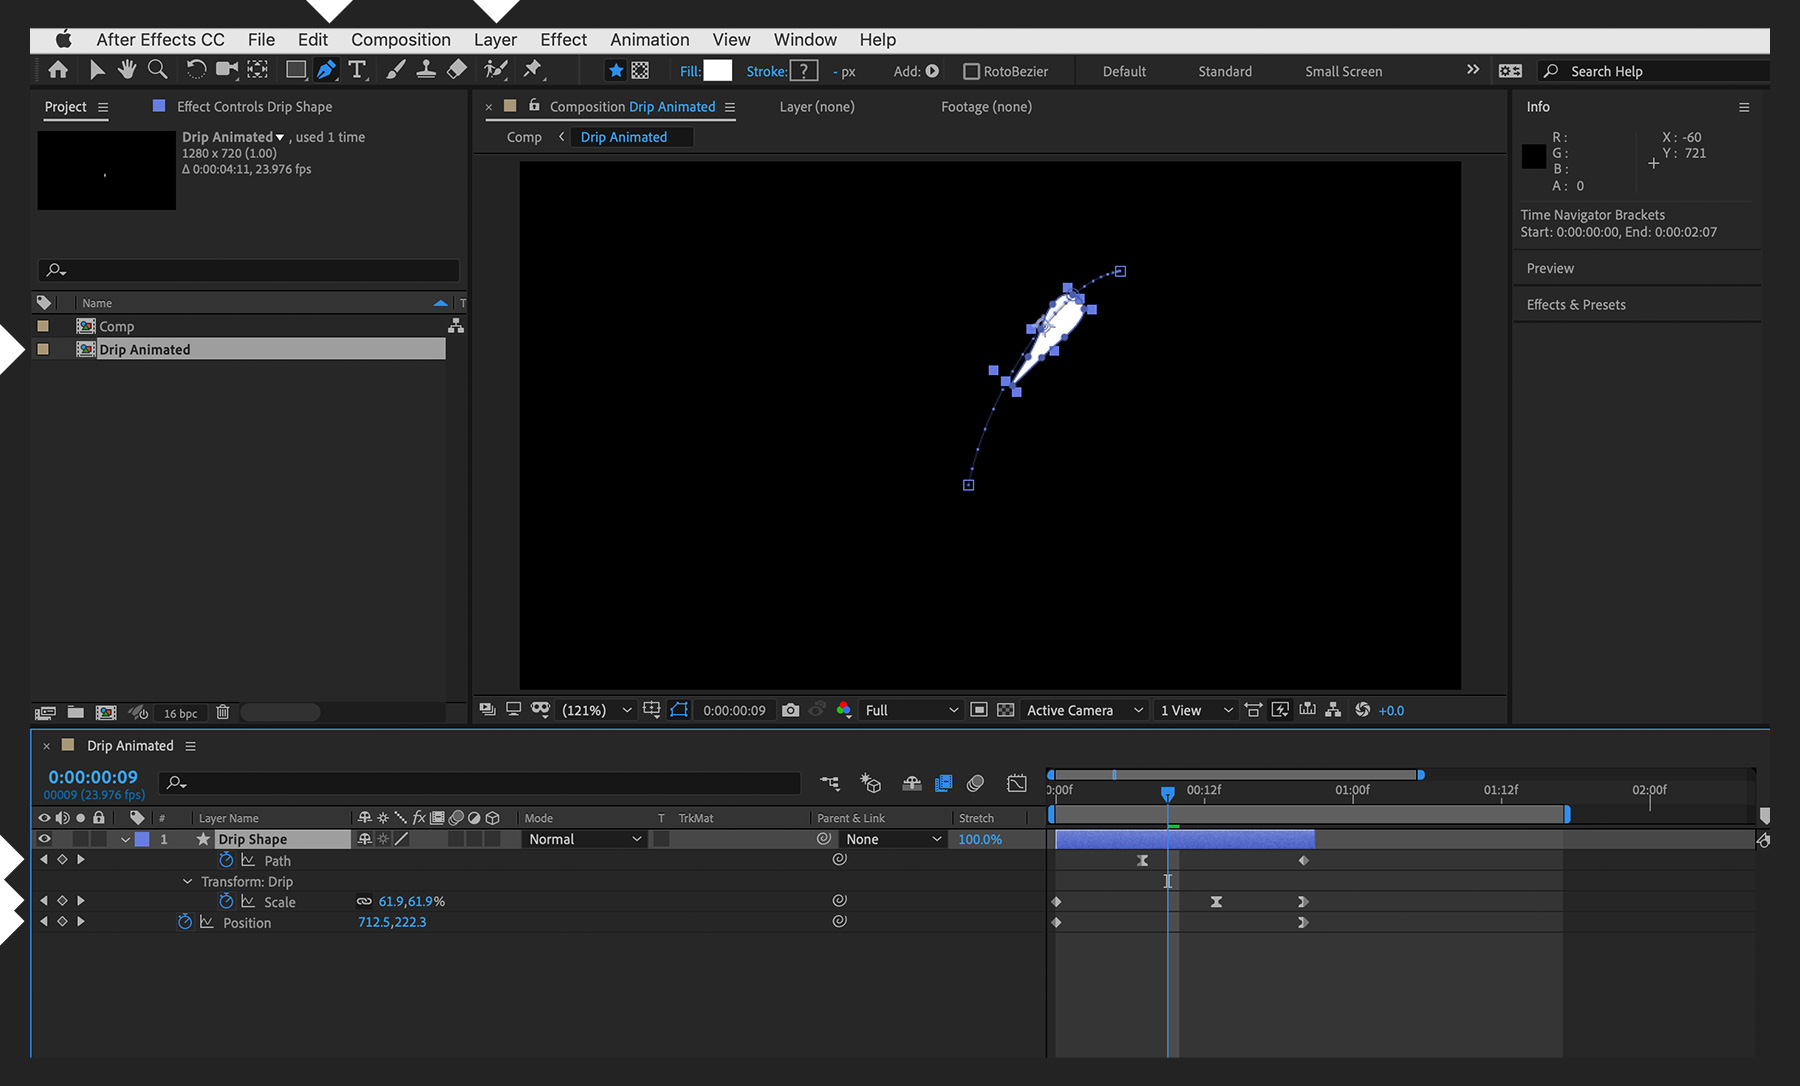 After Effects Signature Animation